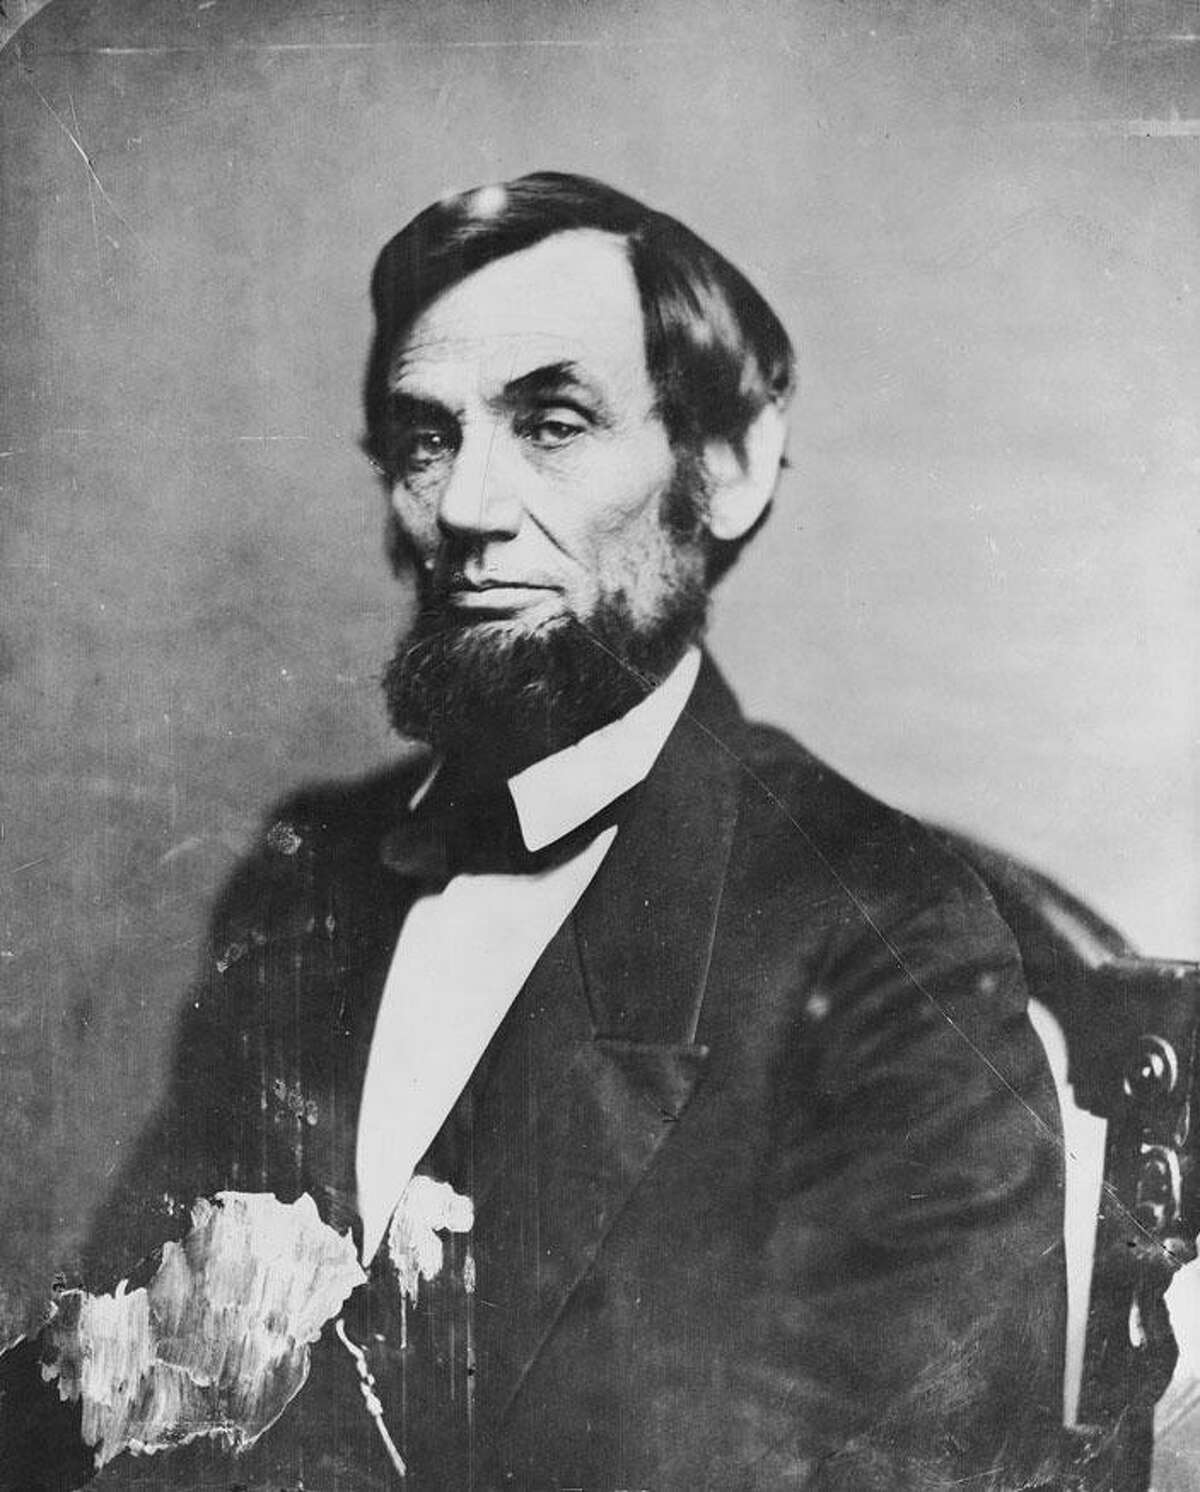 Photograph by Matthew Brady of President Lincoln in the Brady Washington gallery from May 1861.